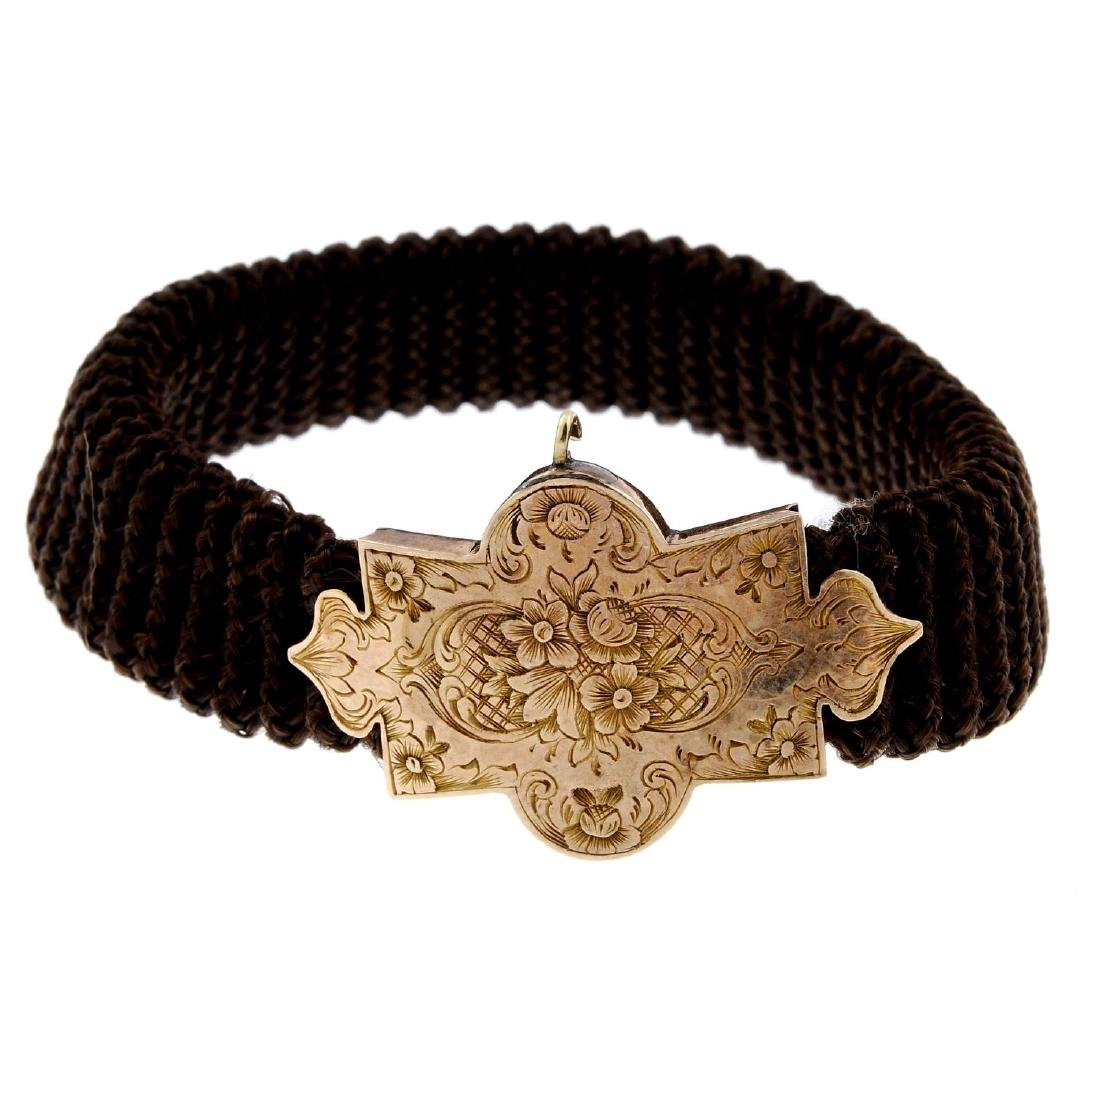 A mid Victorian memorial hair bracelet with 15ct gold